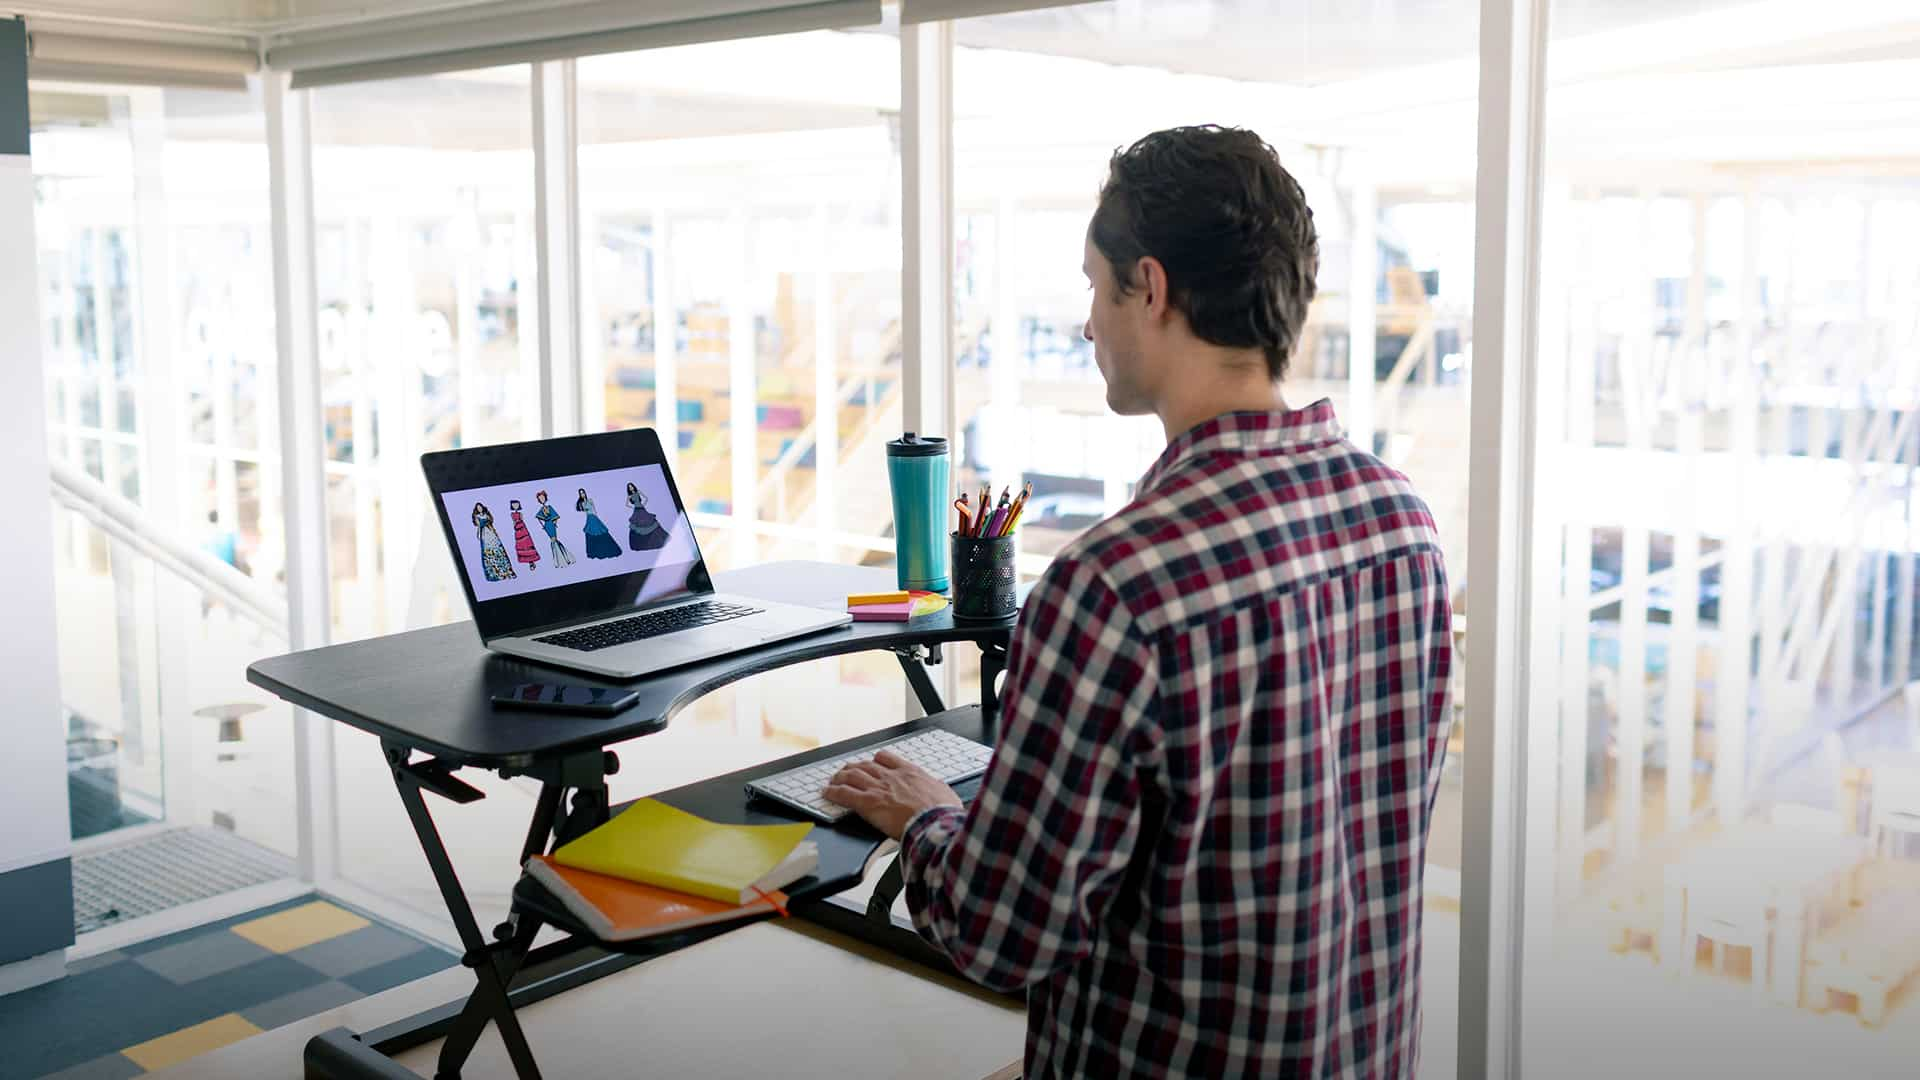 Consider A Stand-Sit Desk